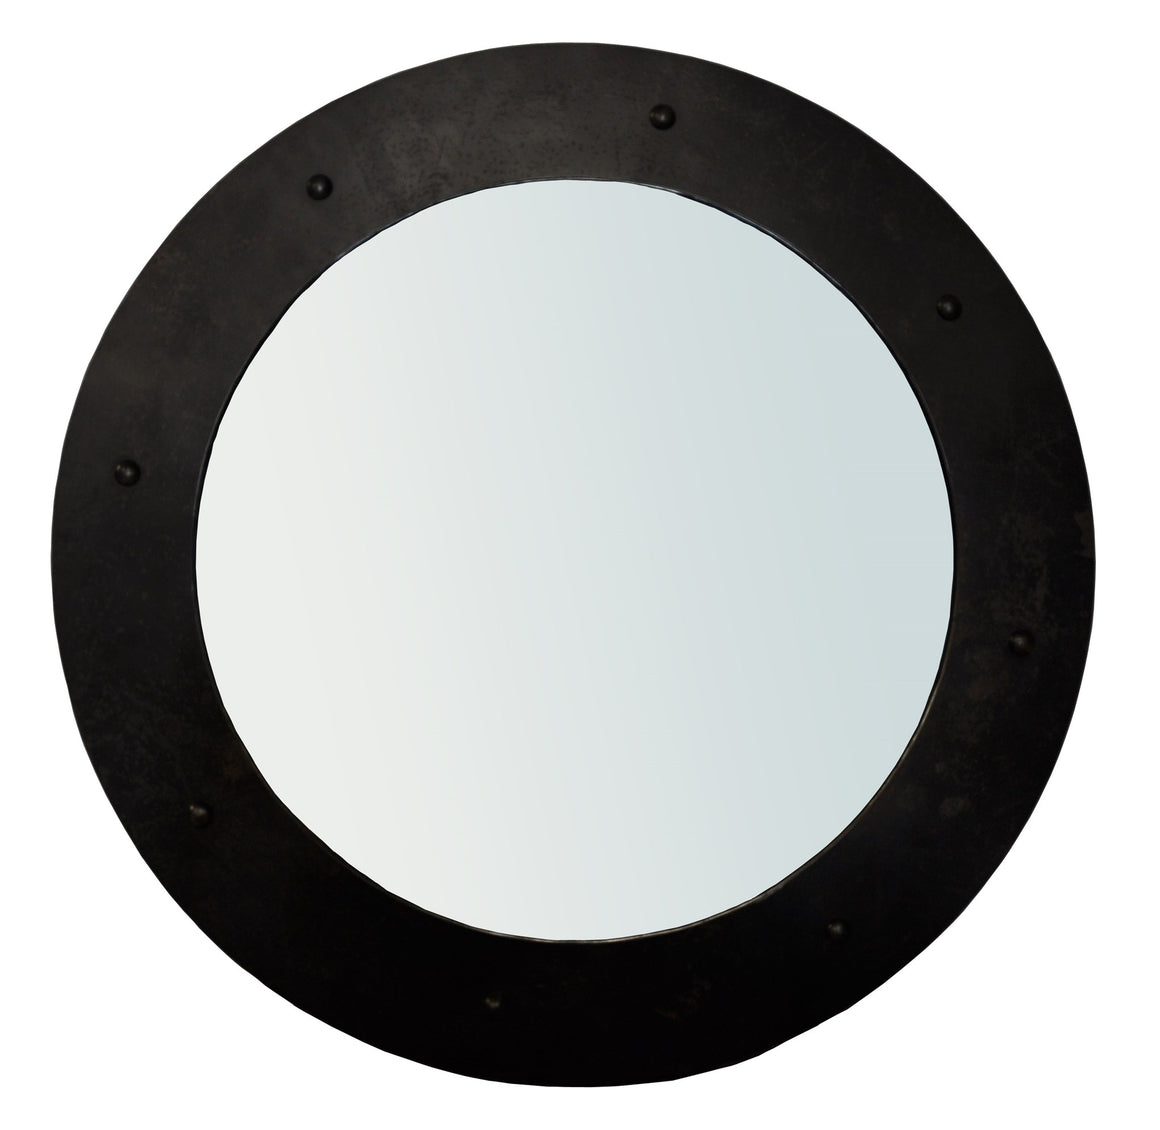 Noir Clay Mirror - Black Metal - Large